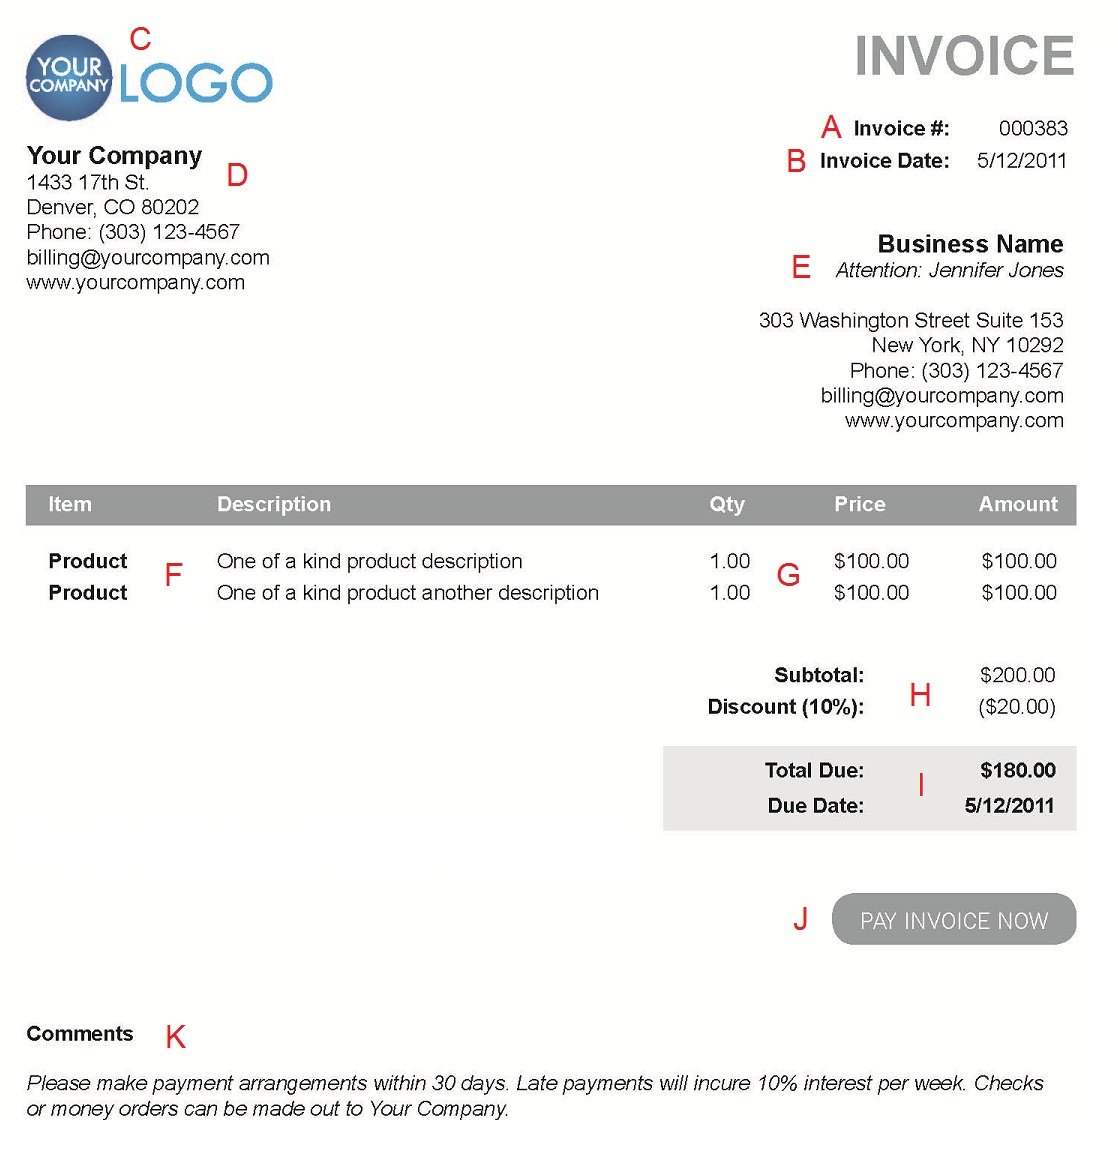 Soulfulpowerus  Marvellous The  Different Sections Of An Electronic Payment Invoice With Lovely A  With Nice Newegg Receipt Also Old Navy Returns Without Receipt In Addition This Is To Acknowledge Receipt Of And Saving Receipts As Well As What Car Receipt Additionally Rma Receipt From Paysimplecom With Soulfulpowerus  Lovely The  Different Sections Of An Electronic Payment Invoice With Nice A  And Marvellous Newegg Receipt Also Old Navy Returns Without Receipt In Addition This Is To Acknowledge Receipt Of From Paysimplecom